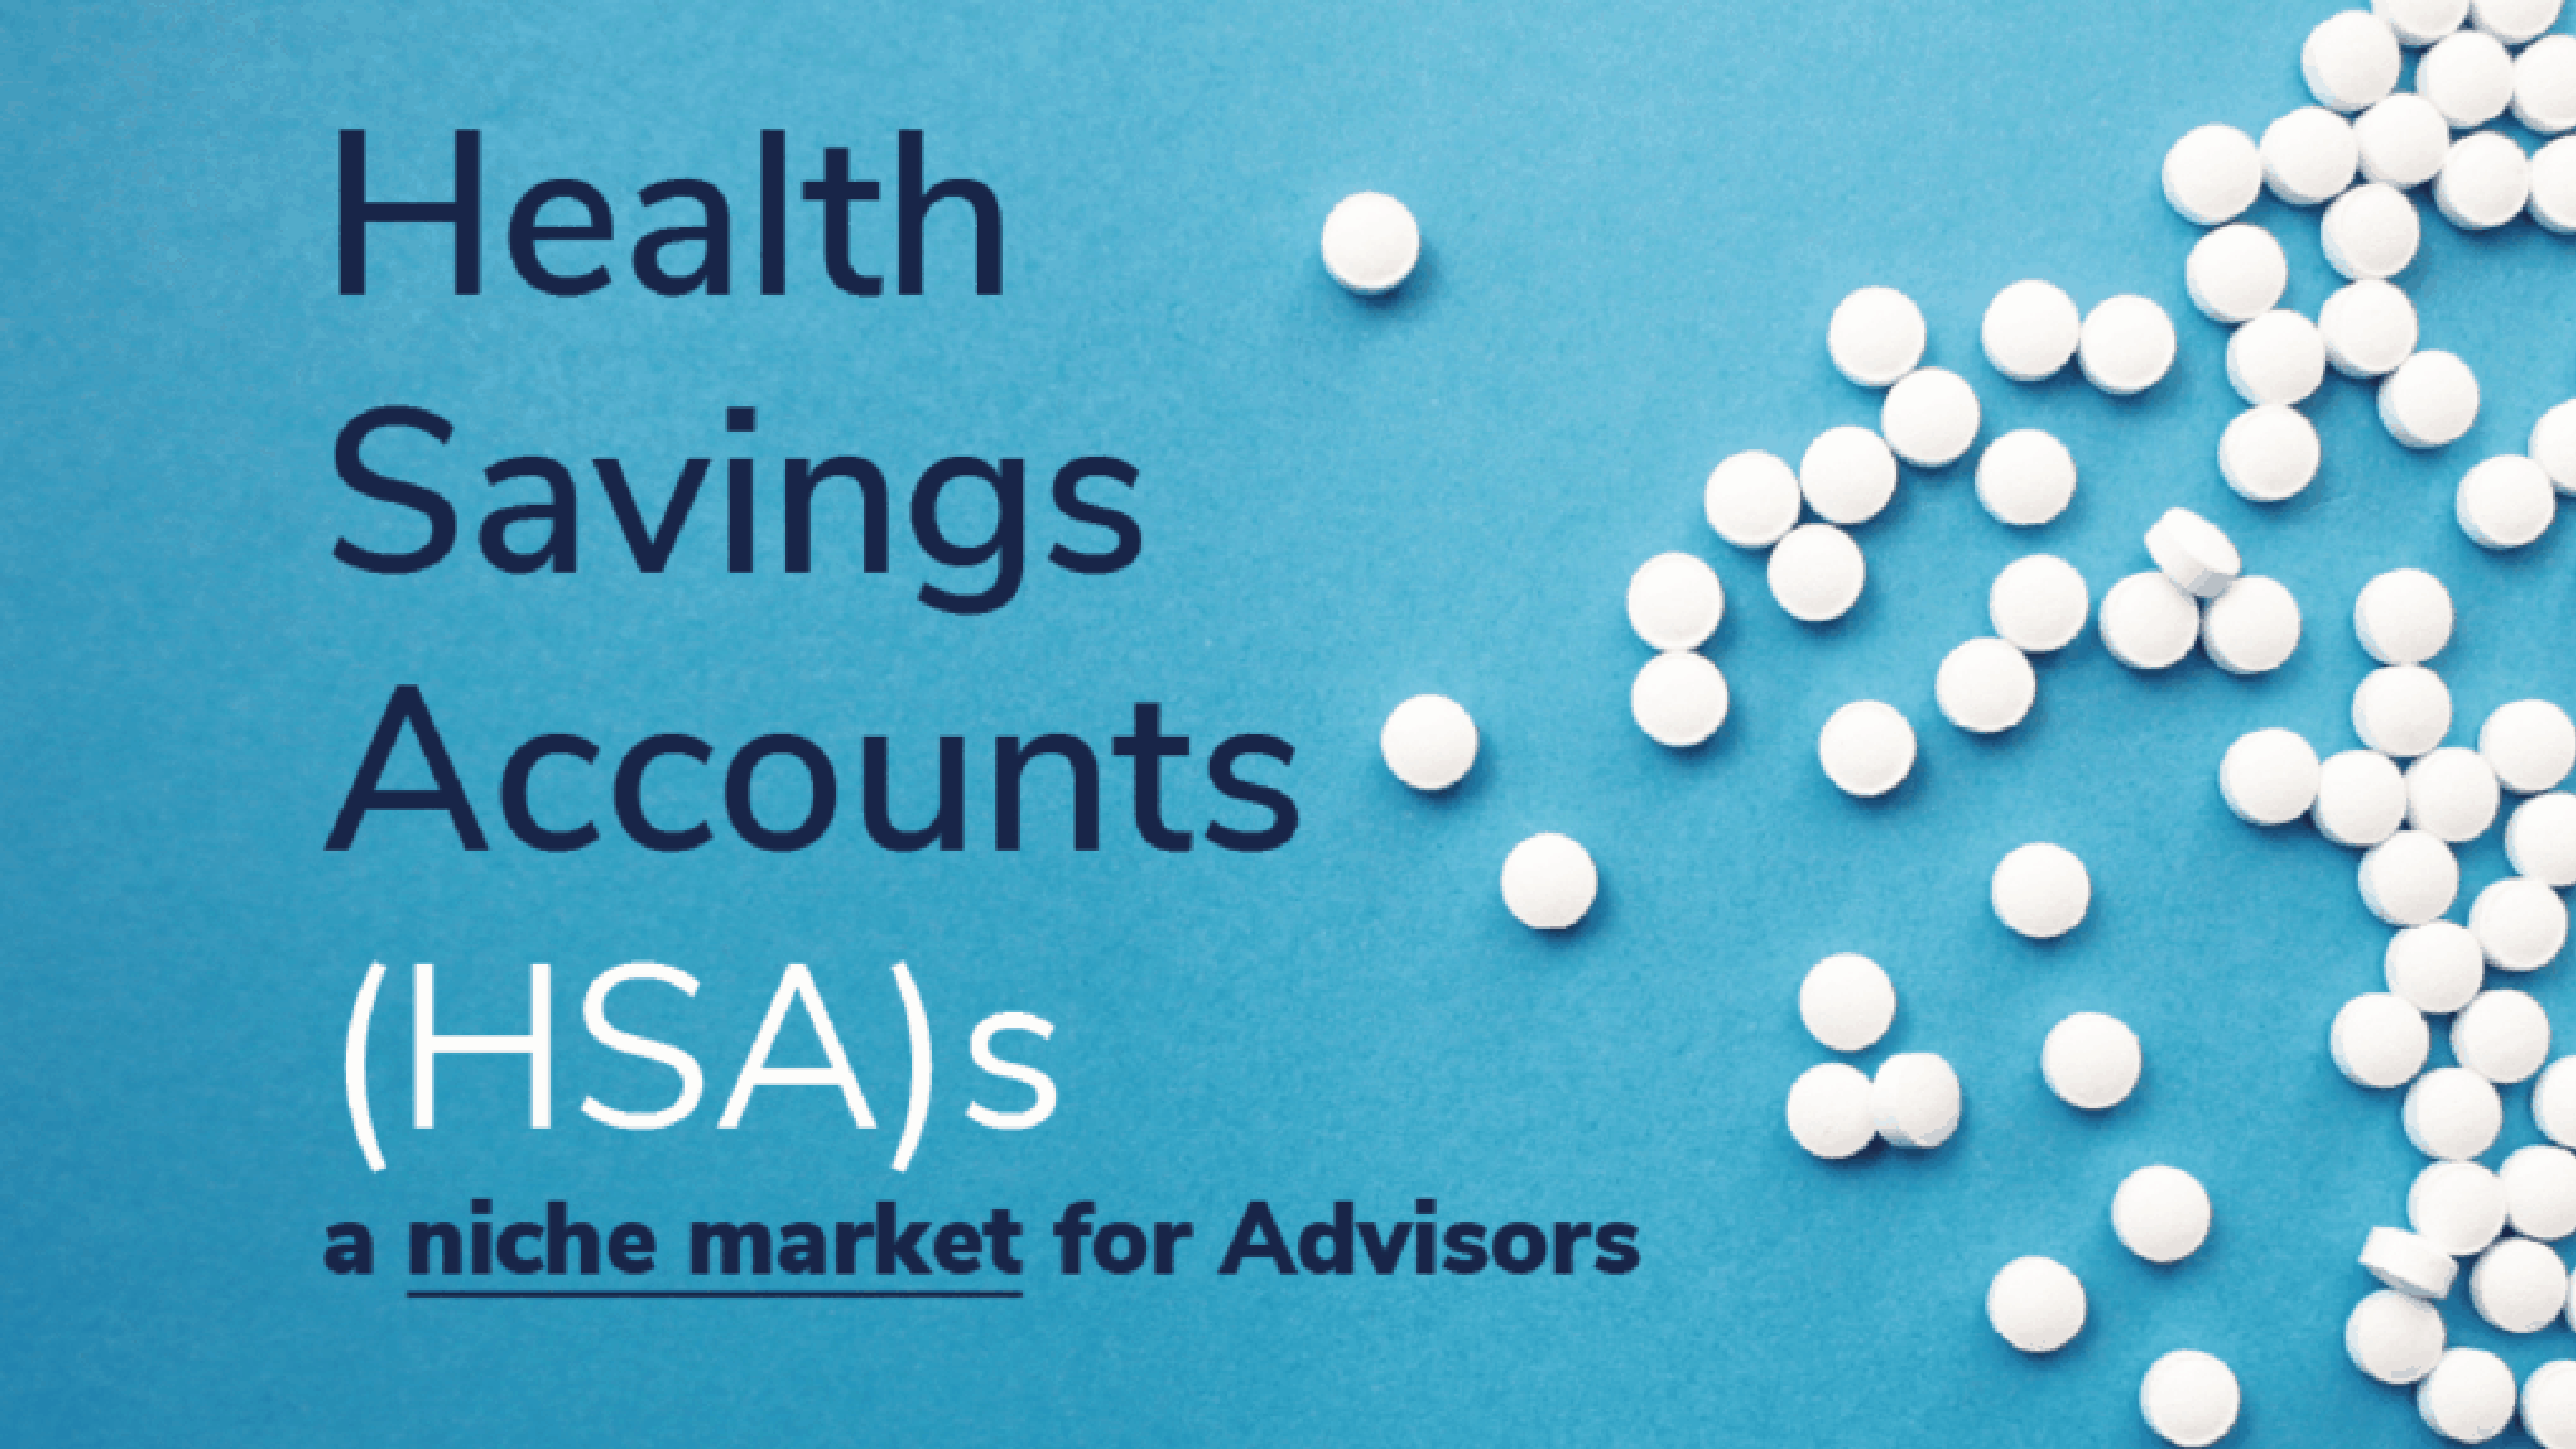 HSAs Can Be a Niche Market for Advisors